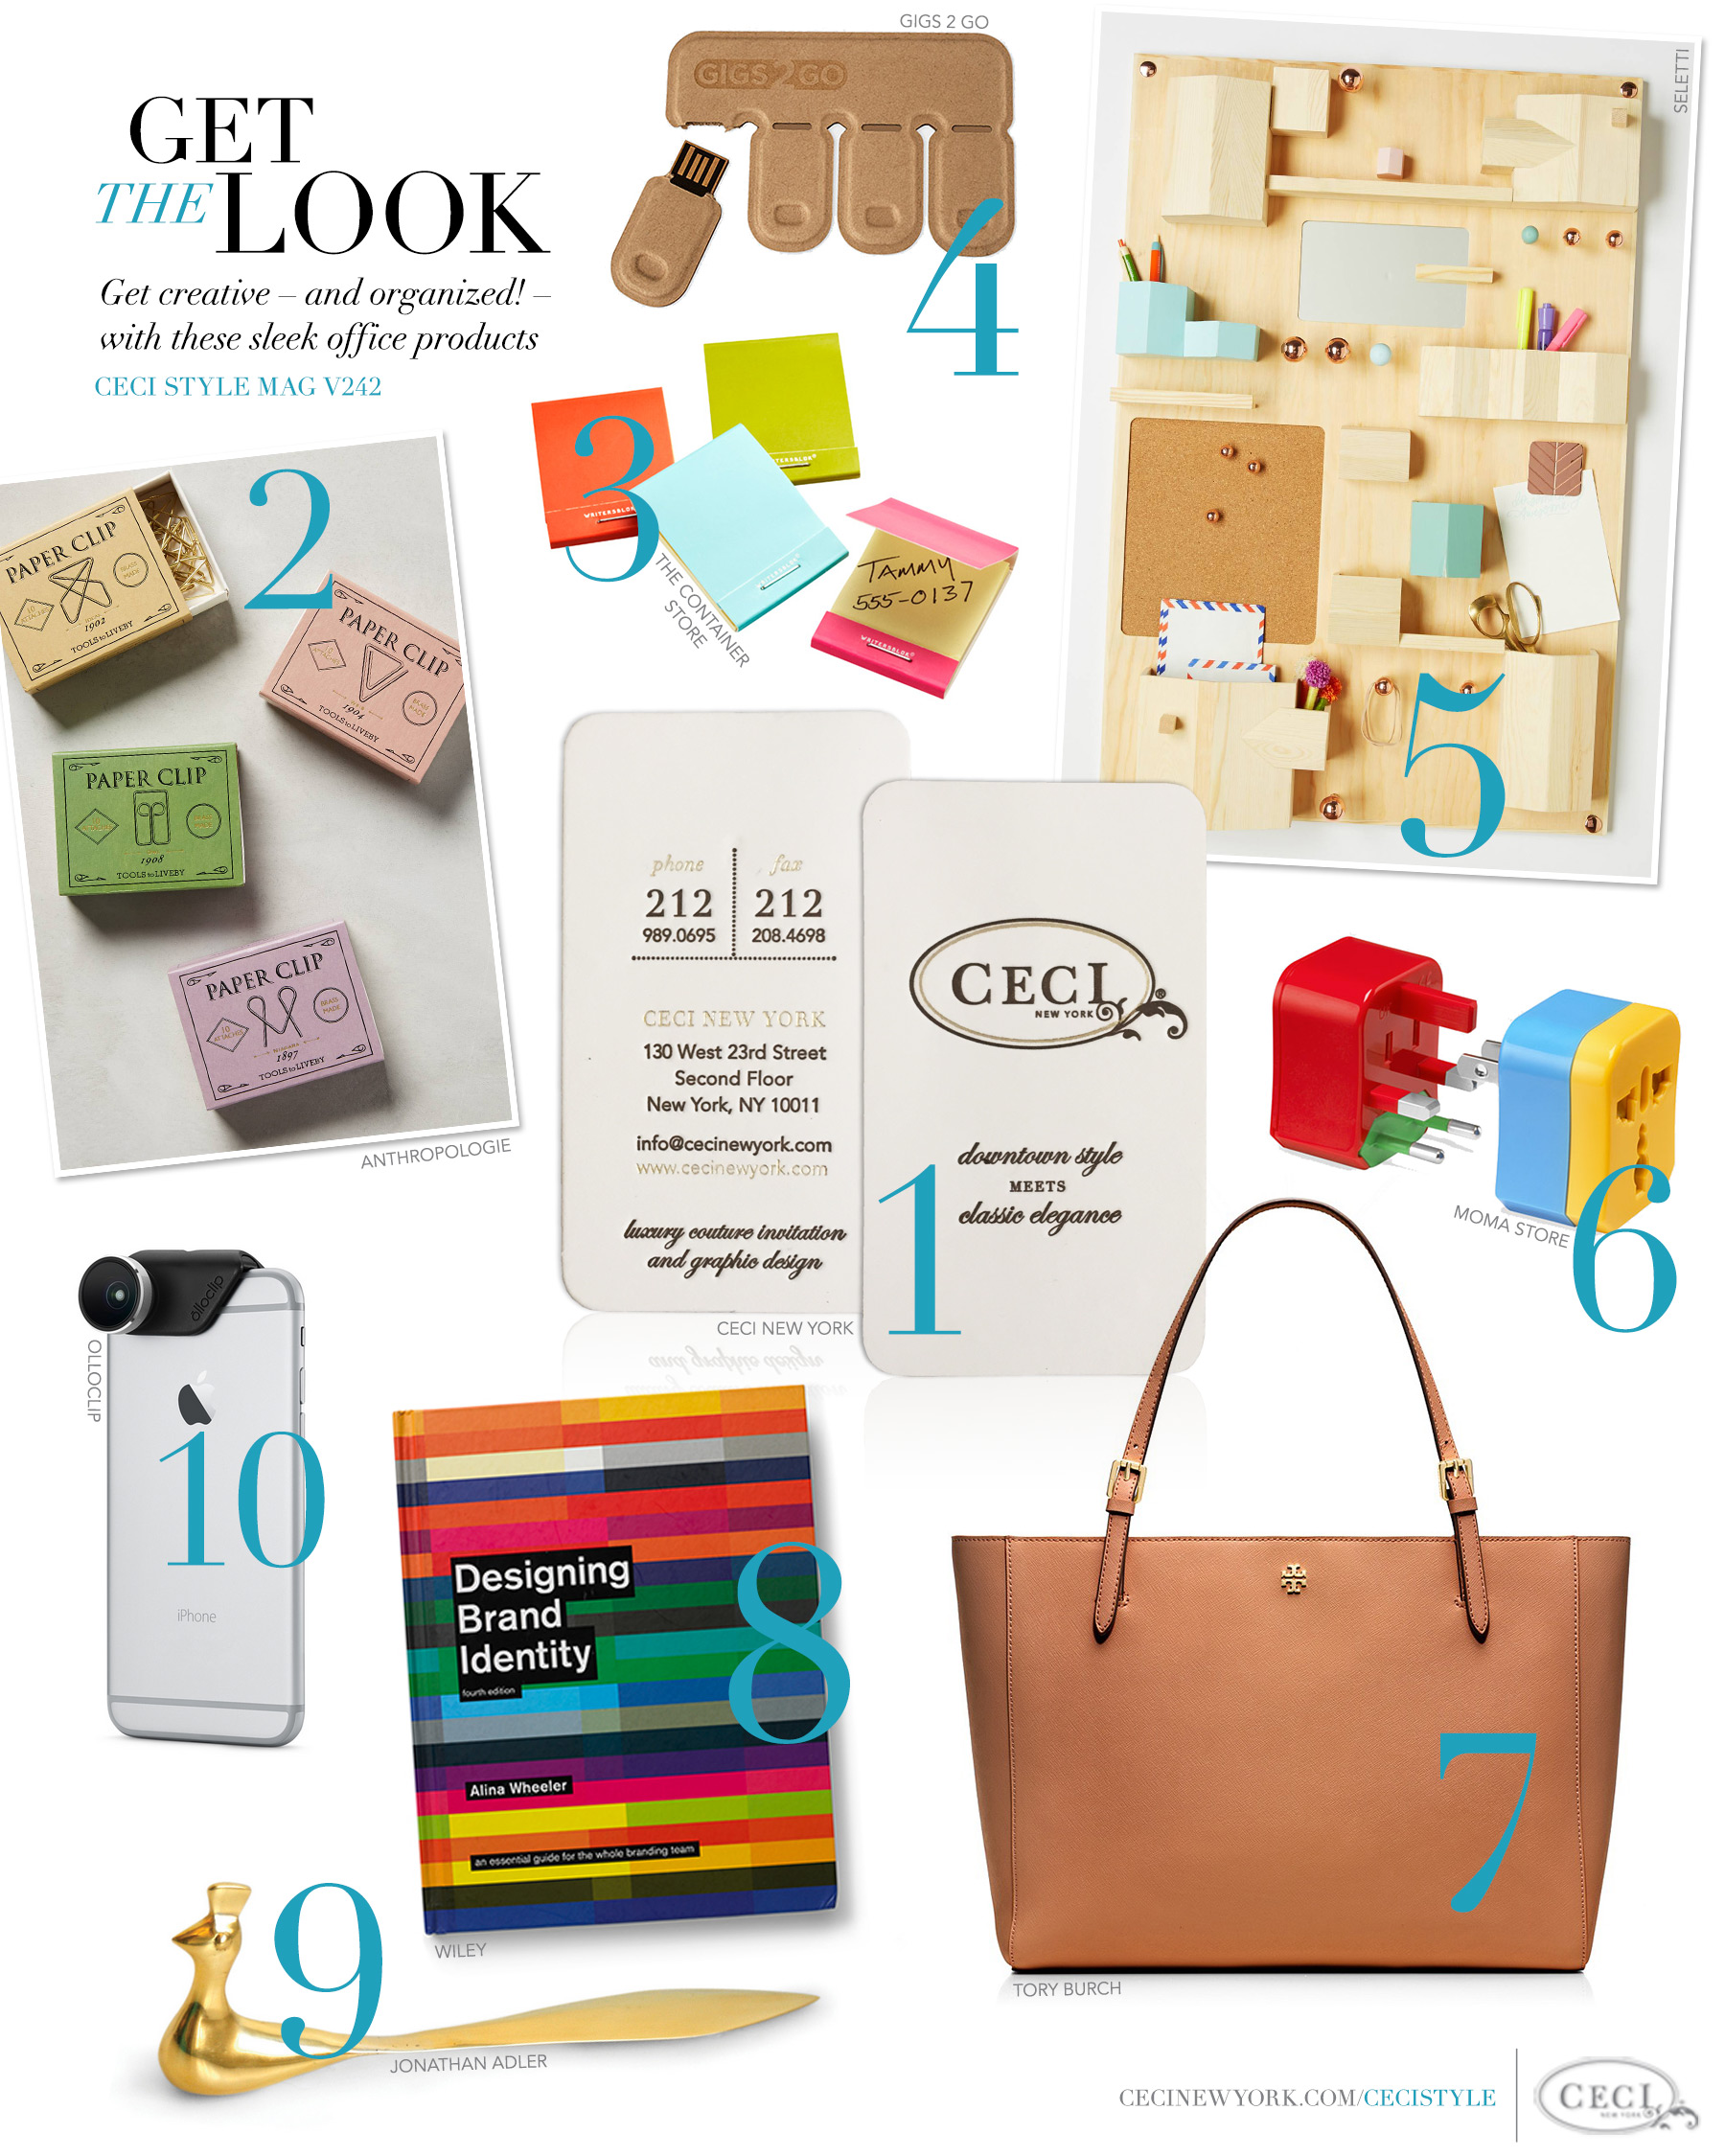 CeciStyle Magazine V242: Get The Look   Building Your Brand   Get Creative  U2013 And